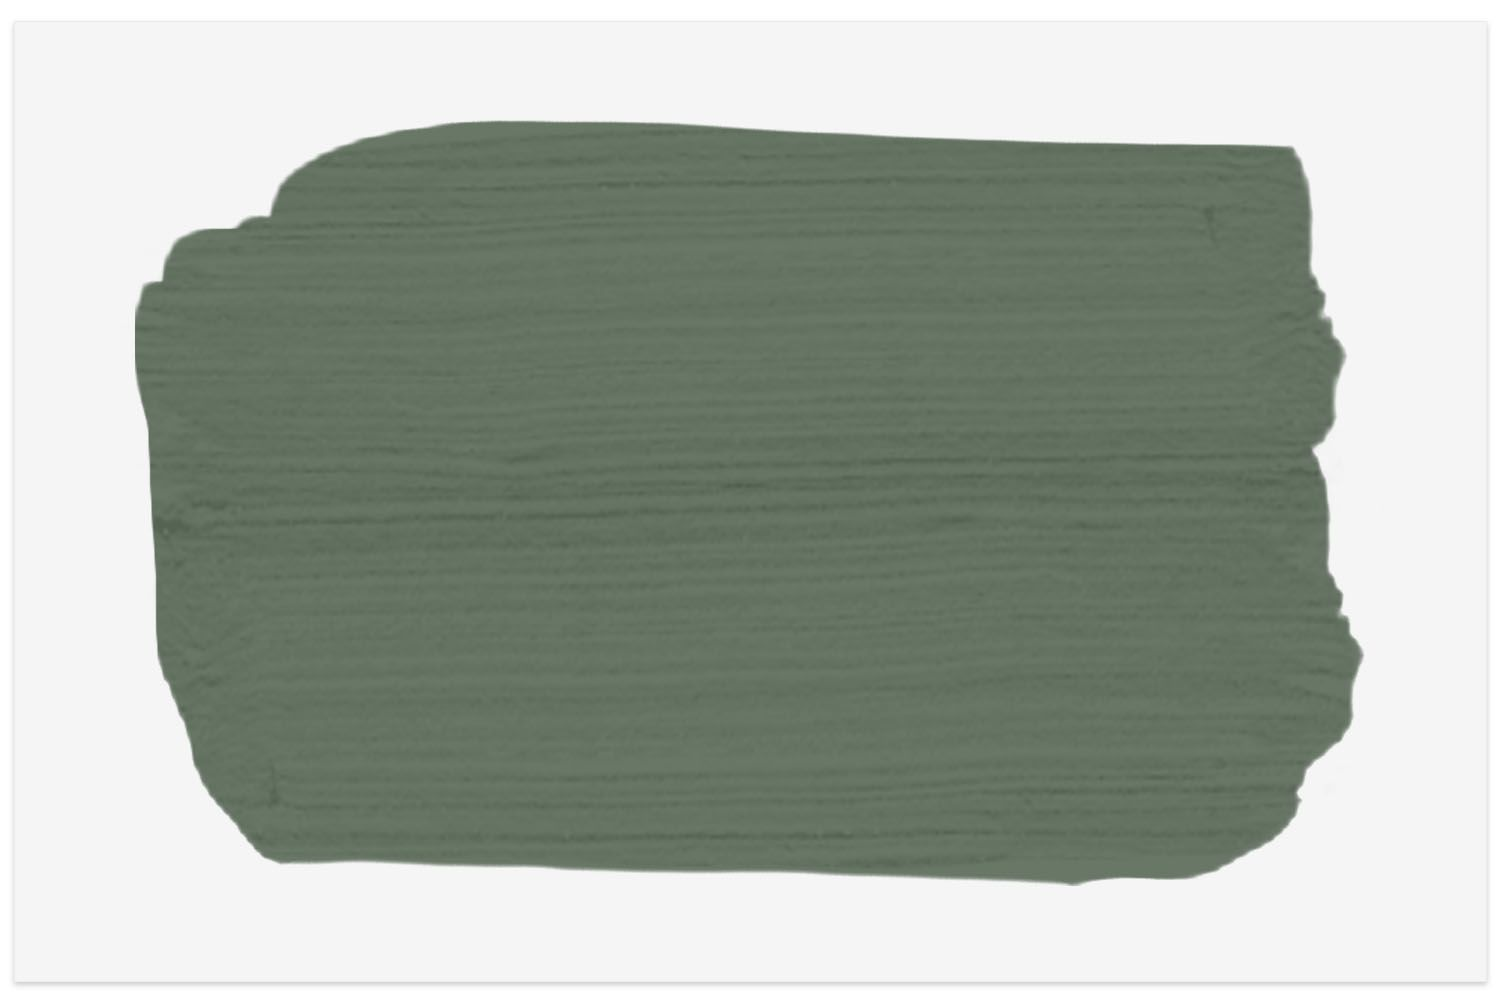 Benjamin Moore paint swatch in Cushing Green